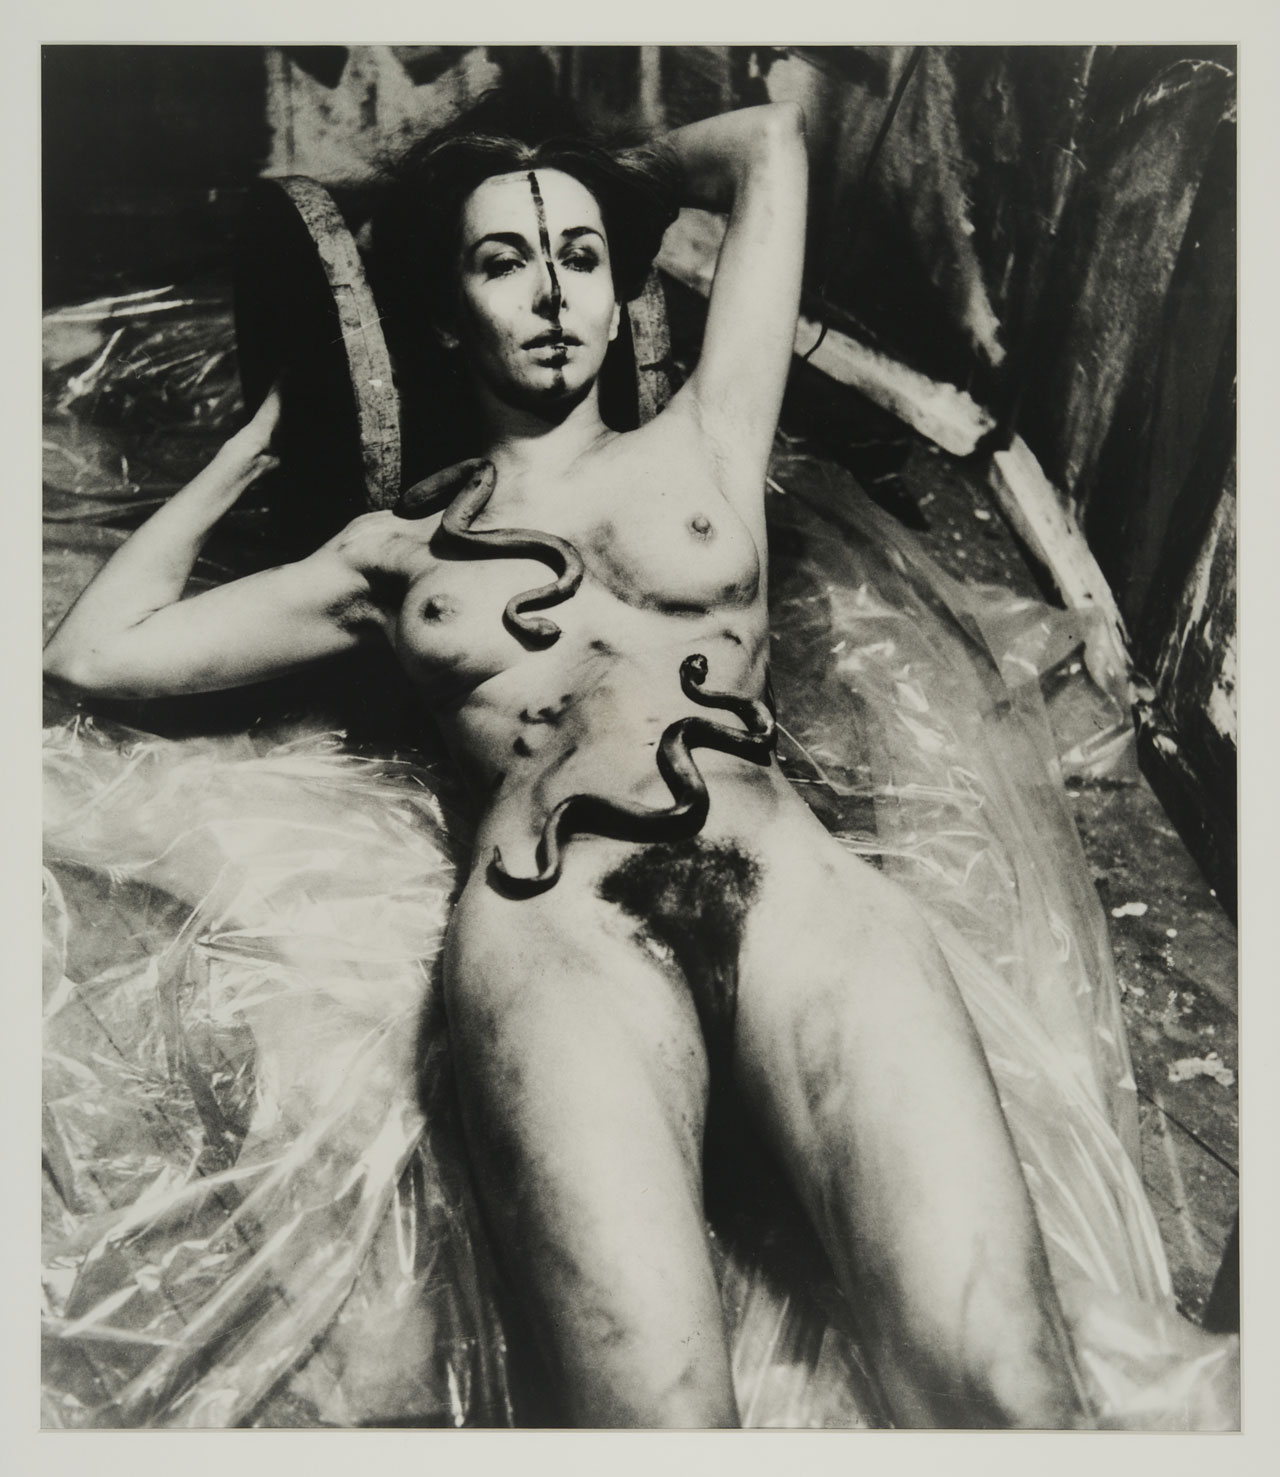 Carolee Schneemann, Eye Body: 36 Transformative Actions for Camera, 1963. VG Bild-Kunst, Bonn 2017, Courtesy: Carolee Schneemann, Erró (*1932)